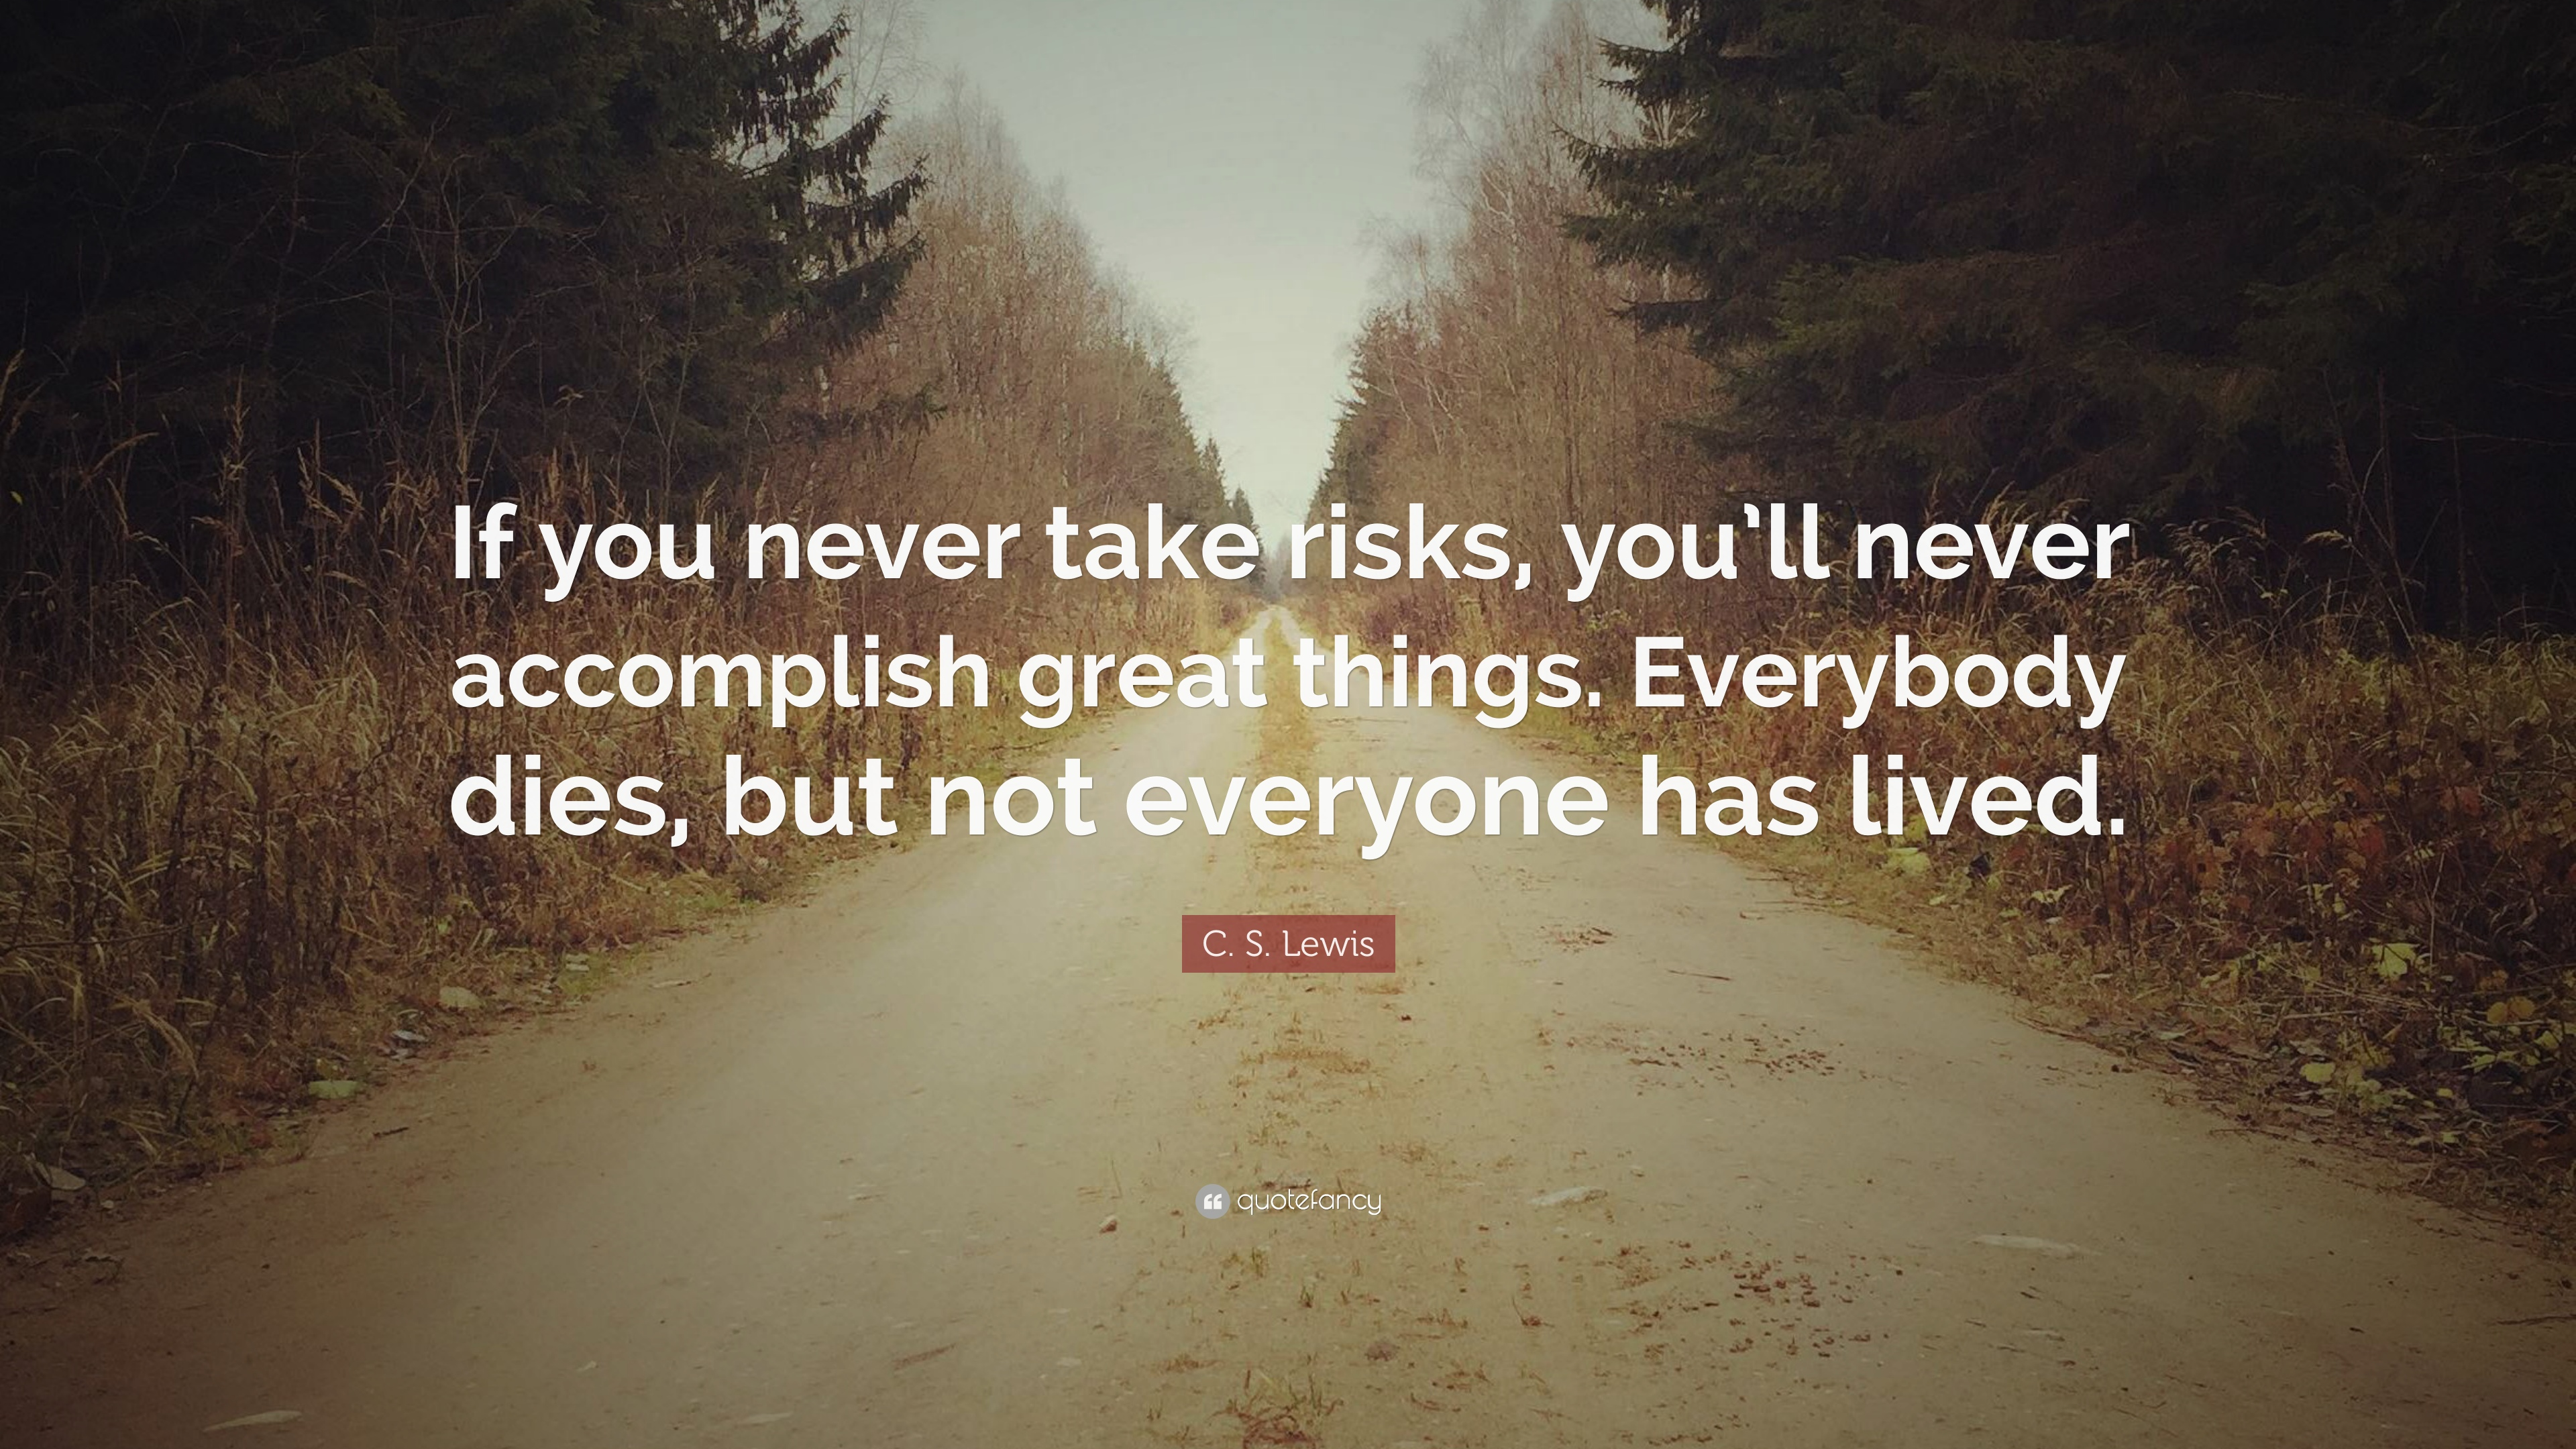 C S Lewis Quote If You Never Take Risks Youll Never Accomplish